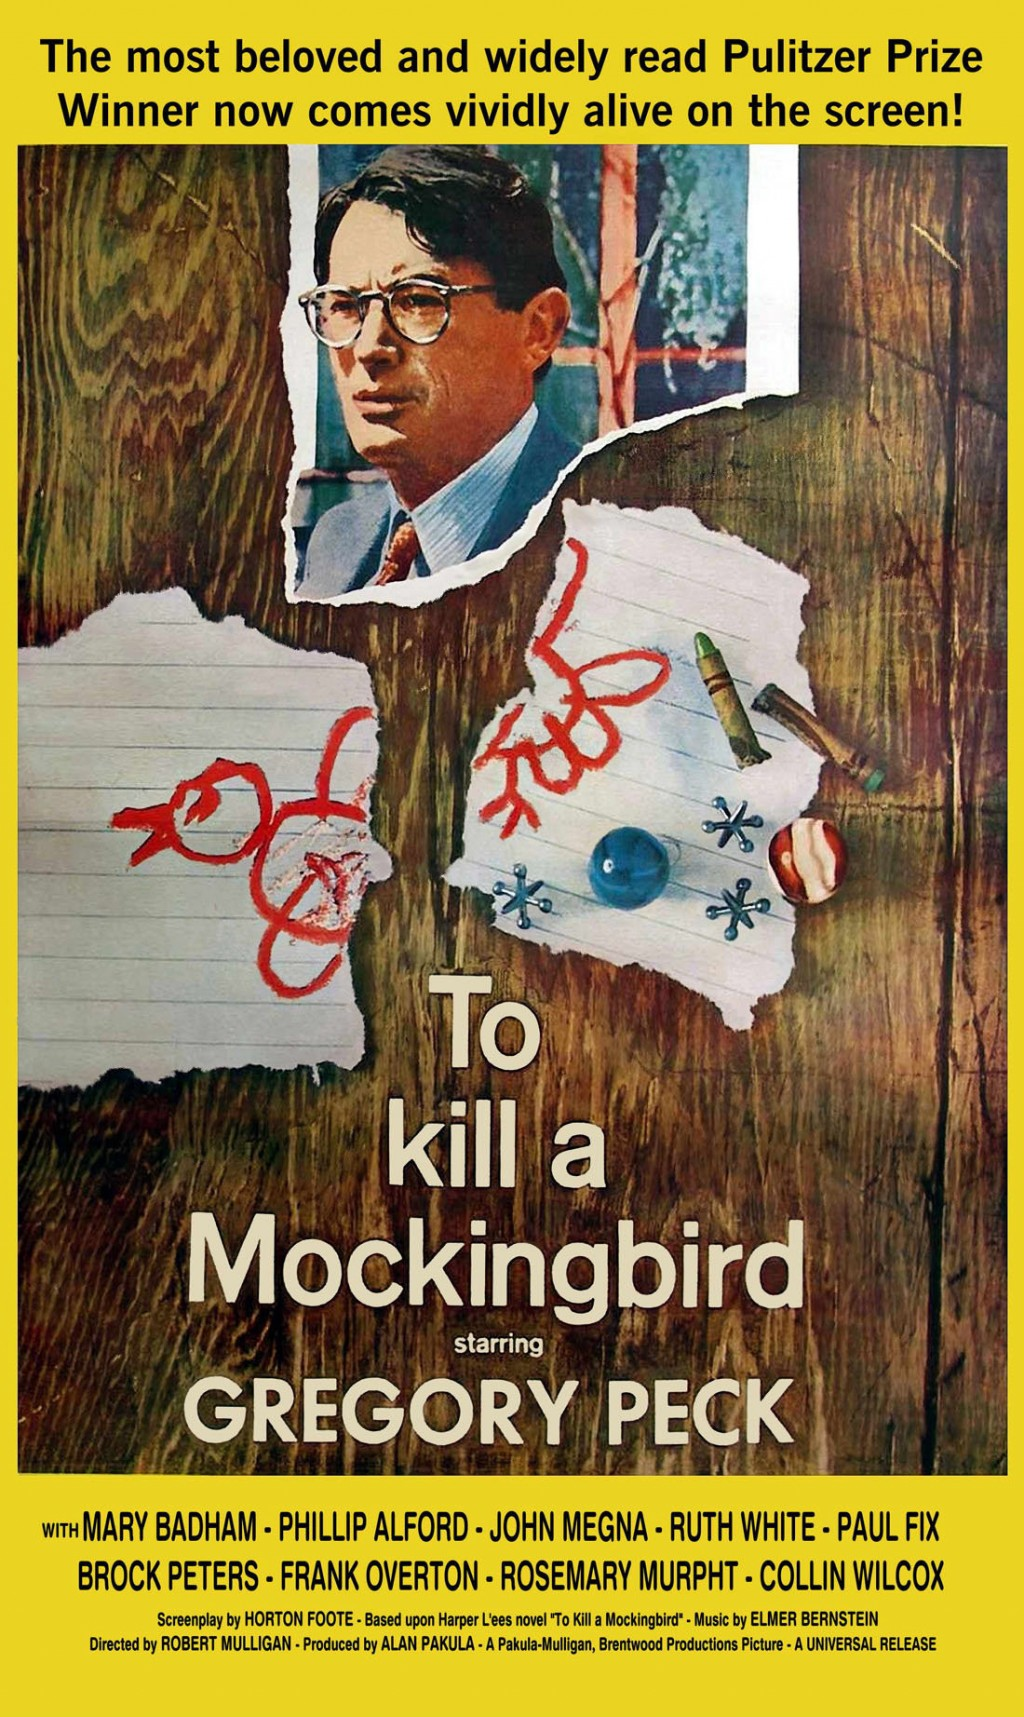 to kill a mockingbird scout coming of age Essay to kill a mockingbird: coming of age of jeremy finch the coming of age of jem, jeremy finch, is shown in many ways through out the book to kill a mockingbird.